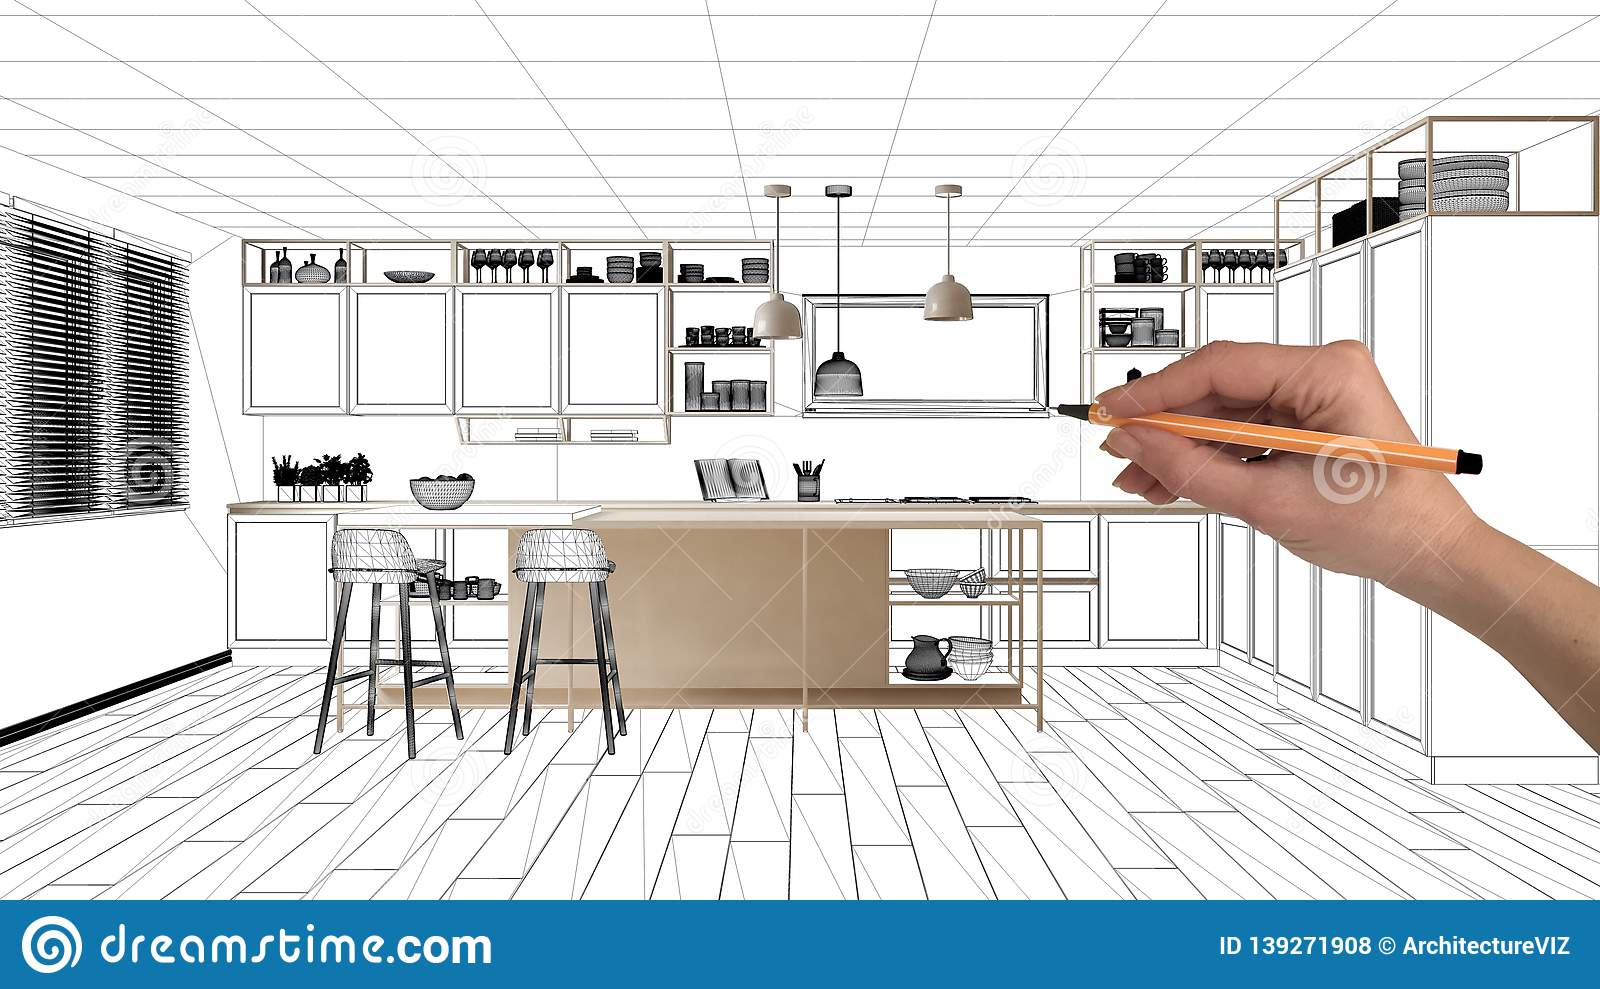 Unfinished Project Under Construction Draft Concept Interior Design Sketch Hand Drawing Real Kitchen Sketch With Blueprint Stock Photo Image Of Abstract Background 139271908